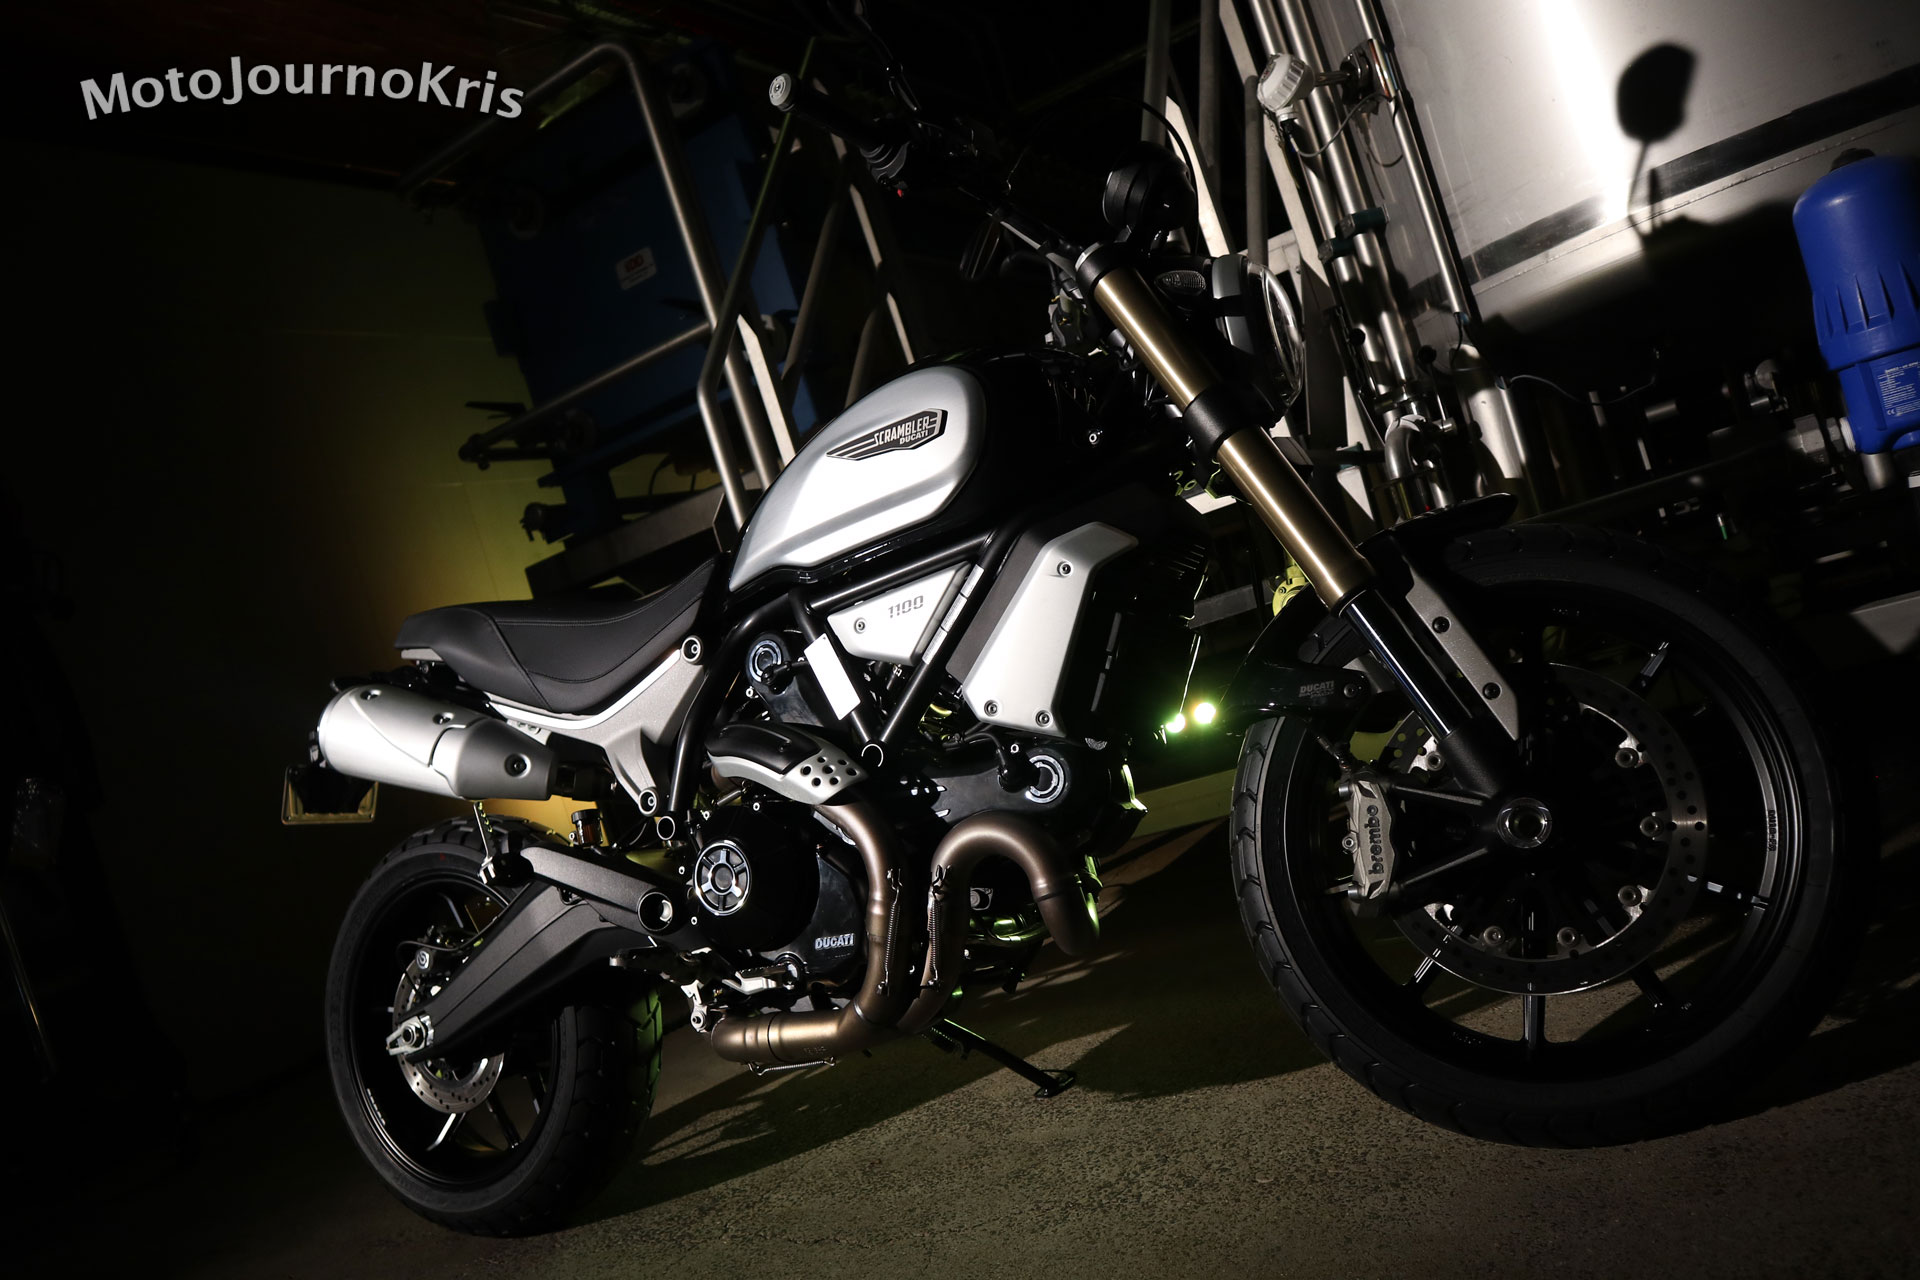 The new Ducati Scrambler 1100